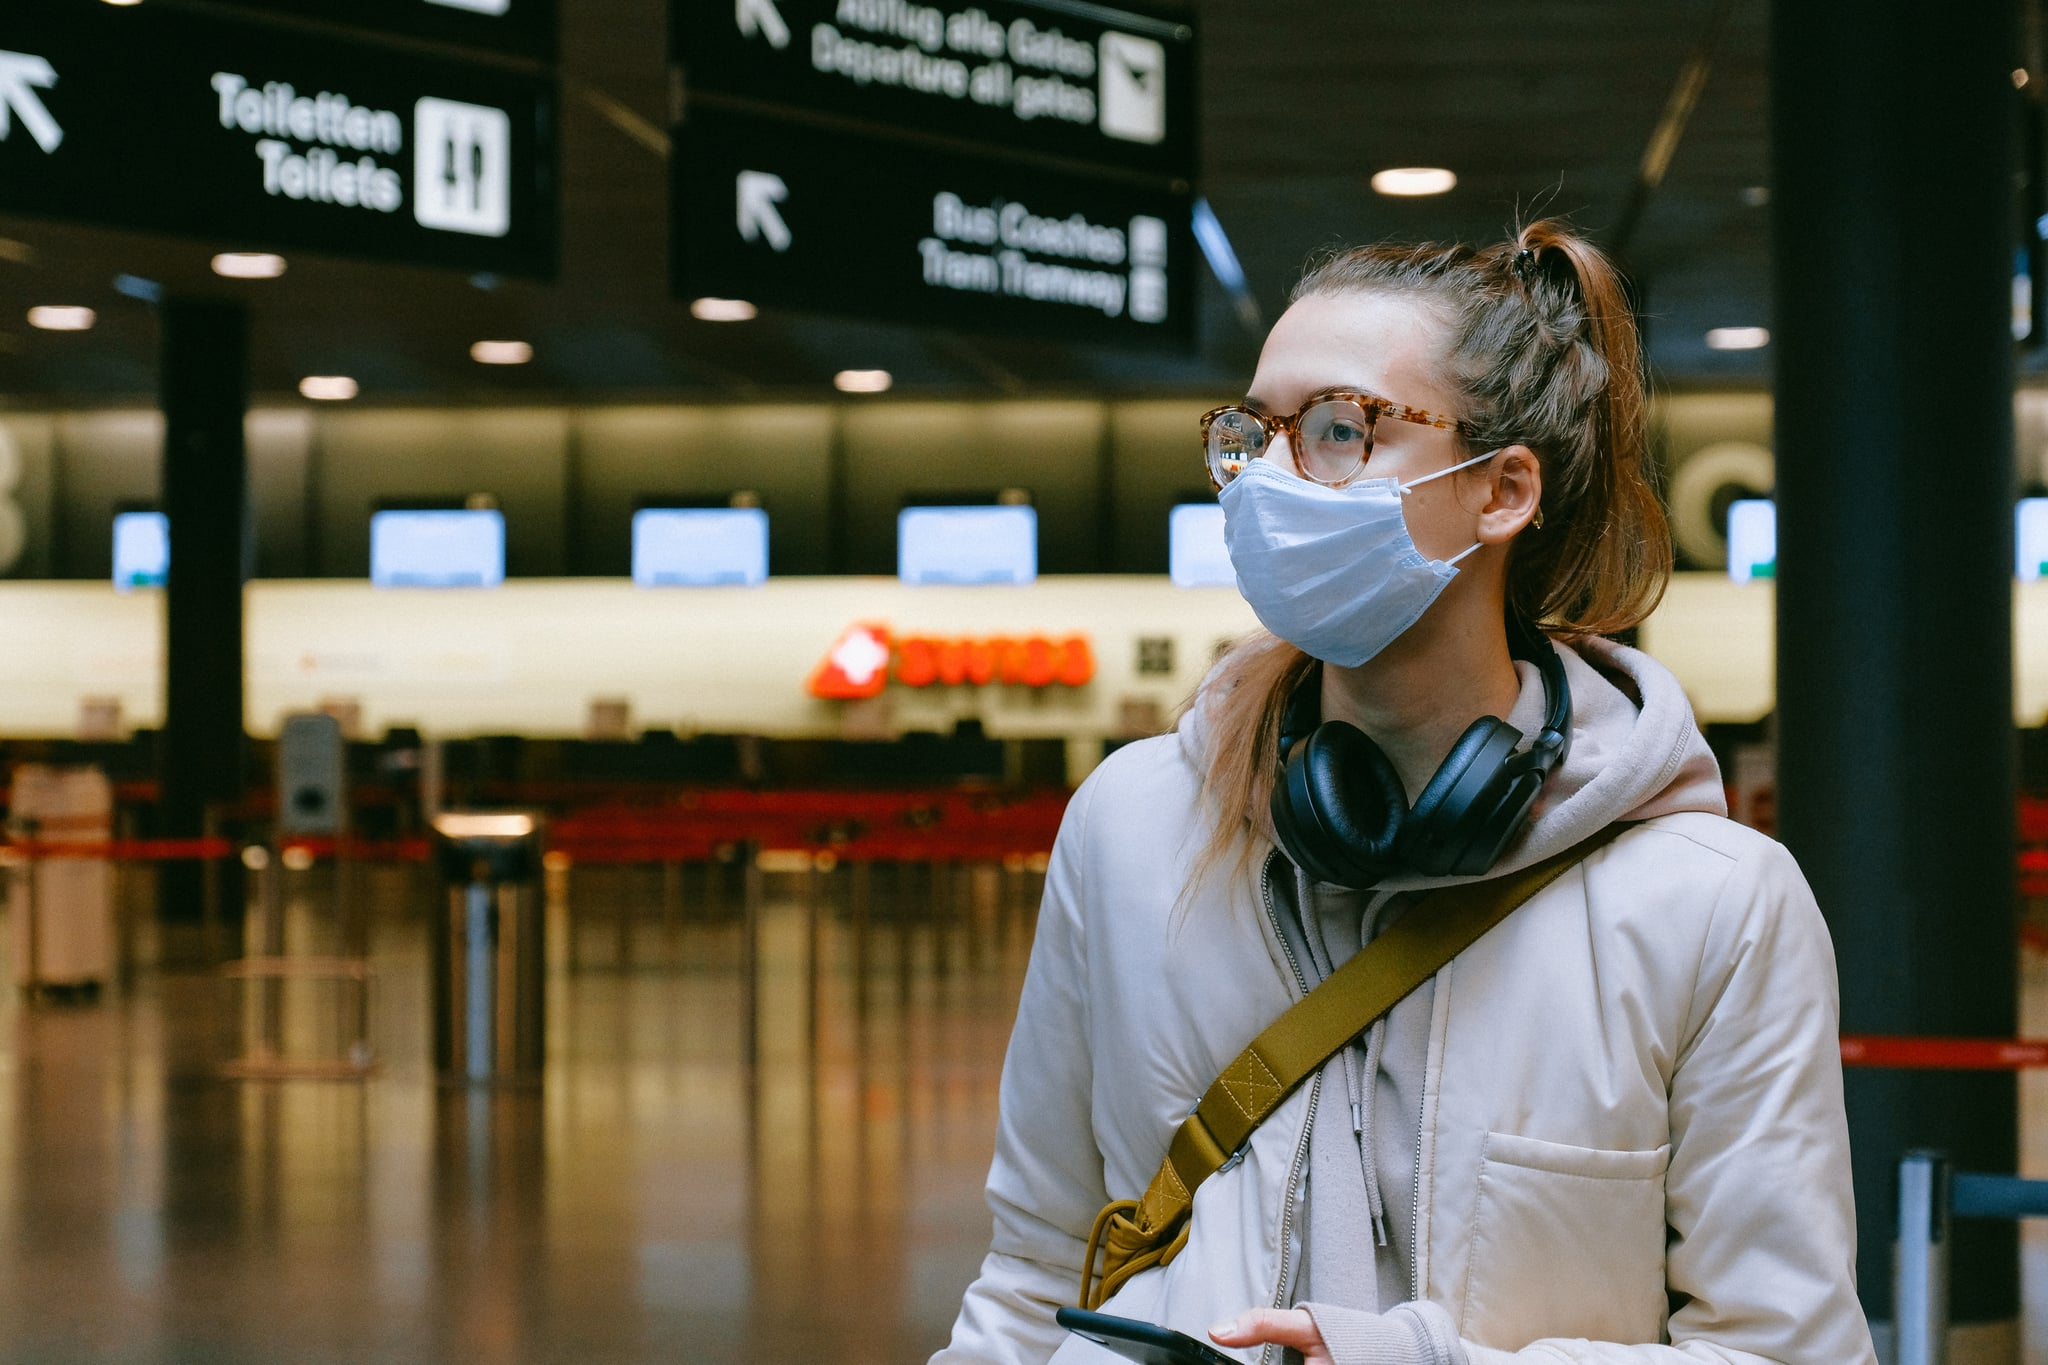 tmp_cxlqP7_32847cc07c712a62_woman-wearing-face-mask-3943881.jpg